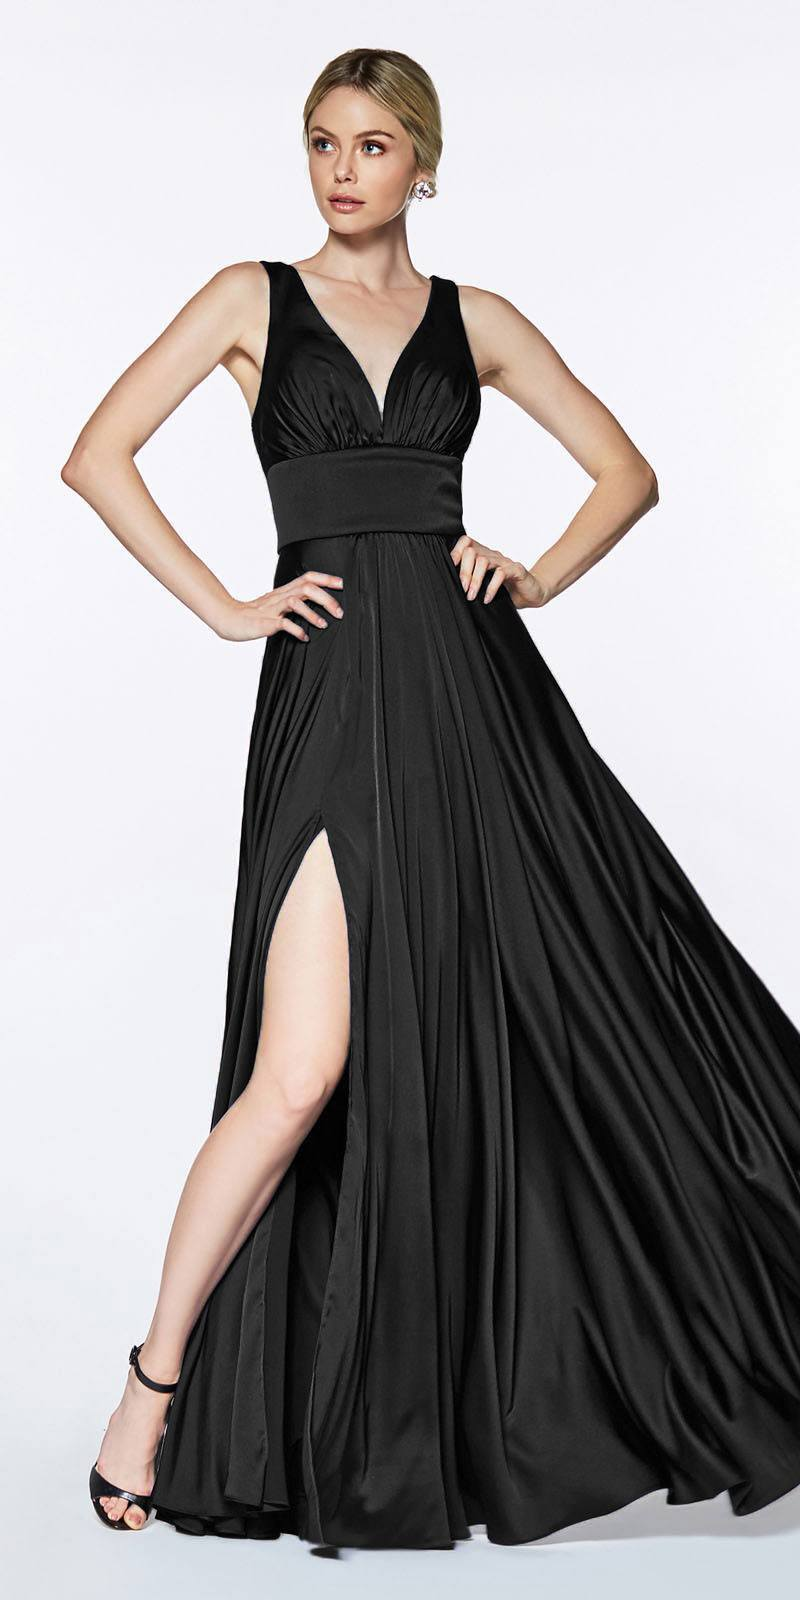 Cinderella Divine - 7469 Sleeveless V Neck High Slit Satin Gown In Black